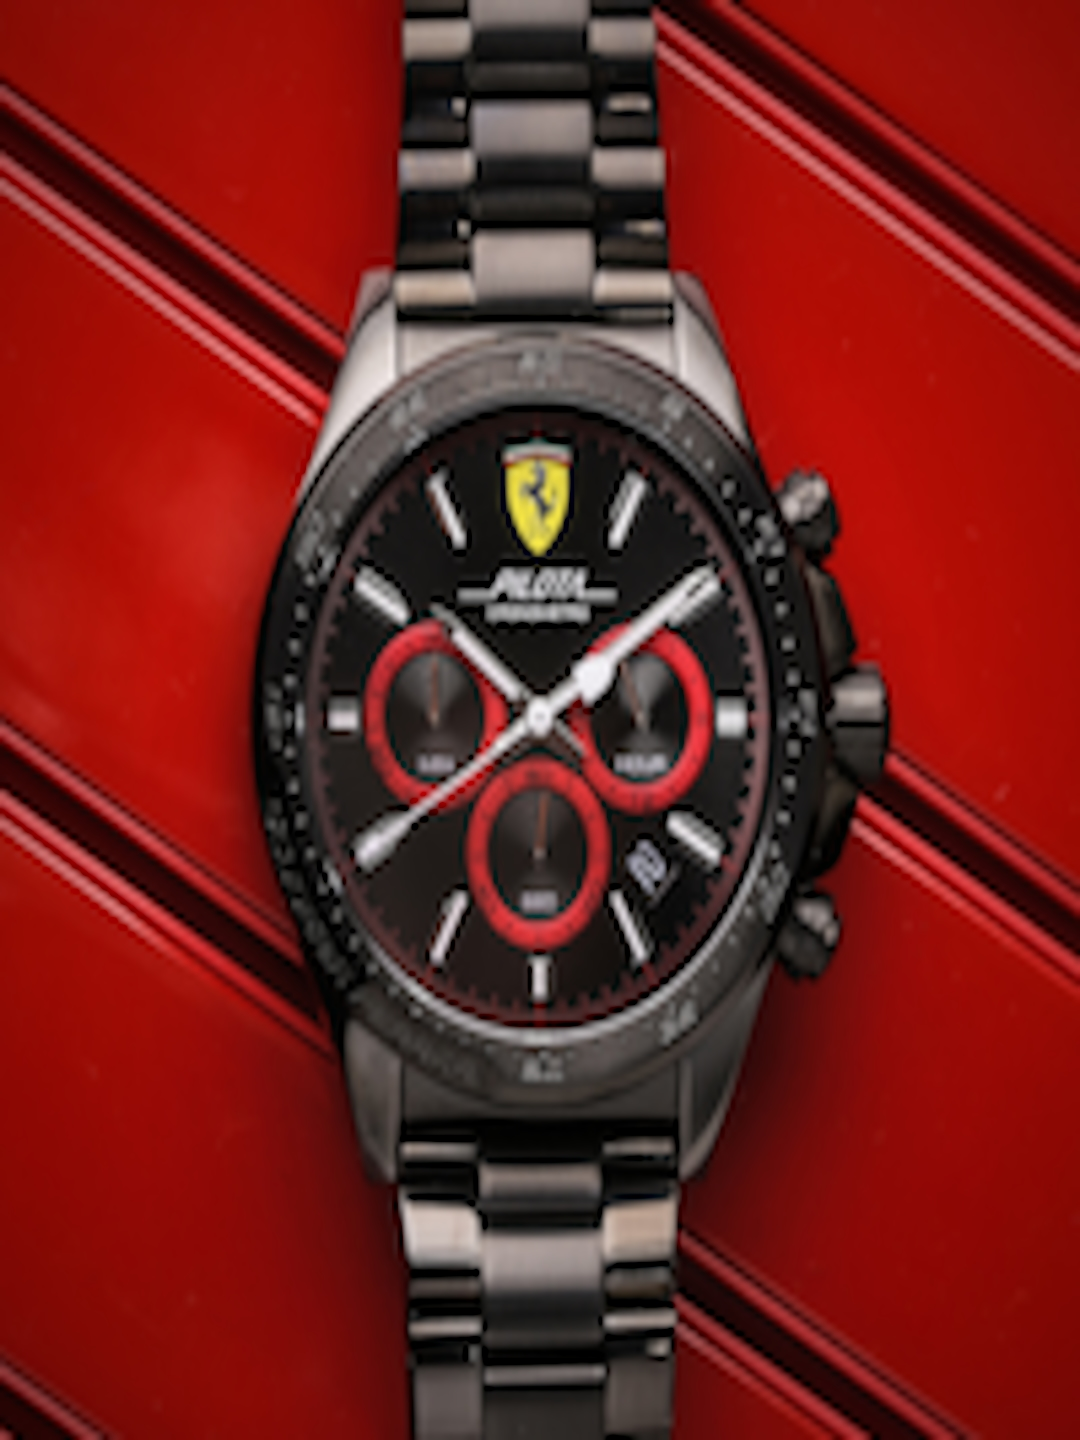 buy la s laferrari watch ferrari watches race mp price hublot sapphire latest with begins baselworld circa red men